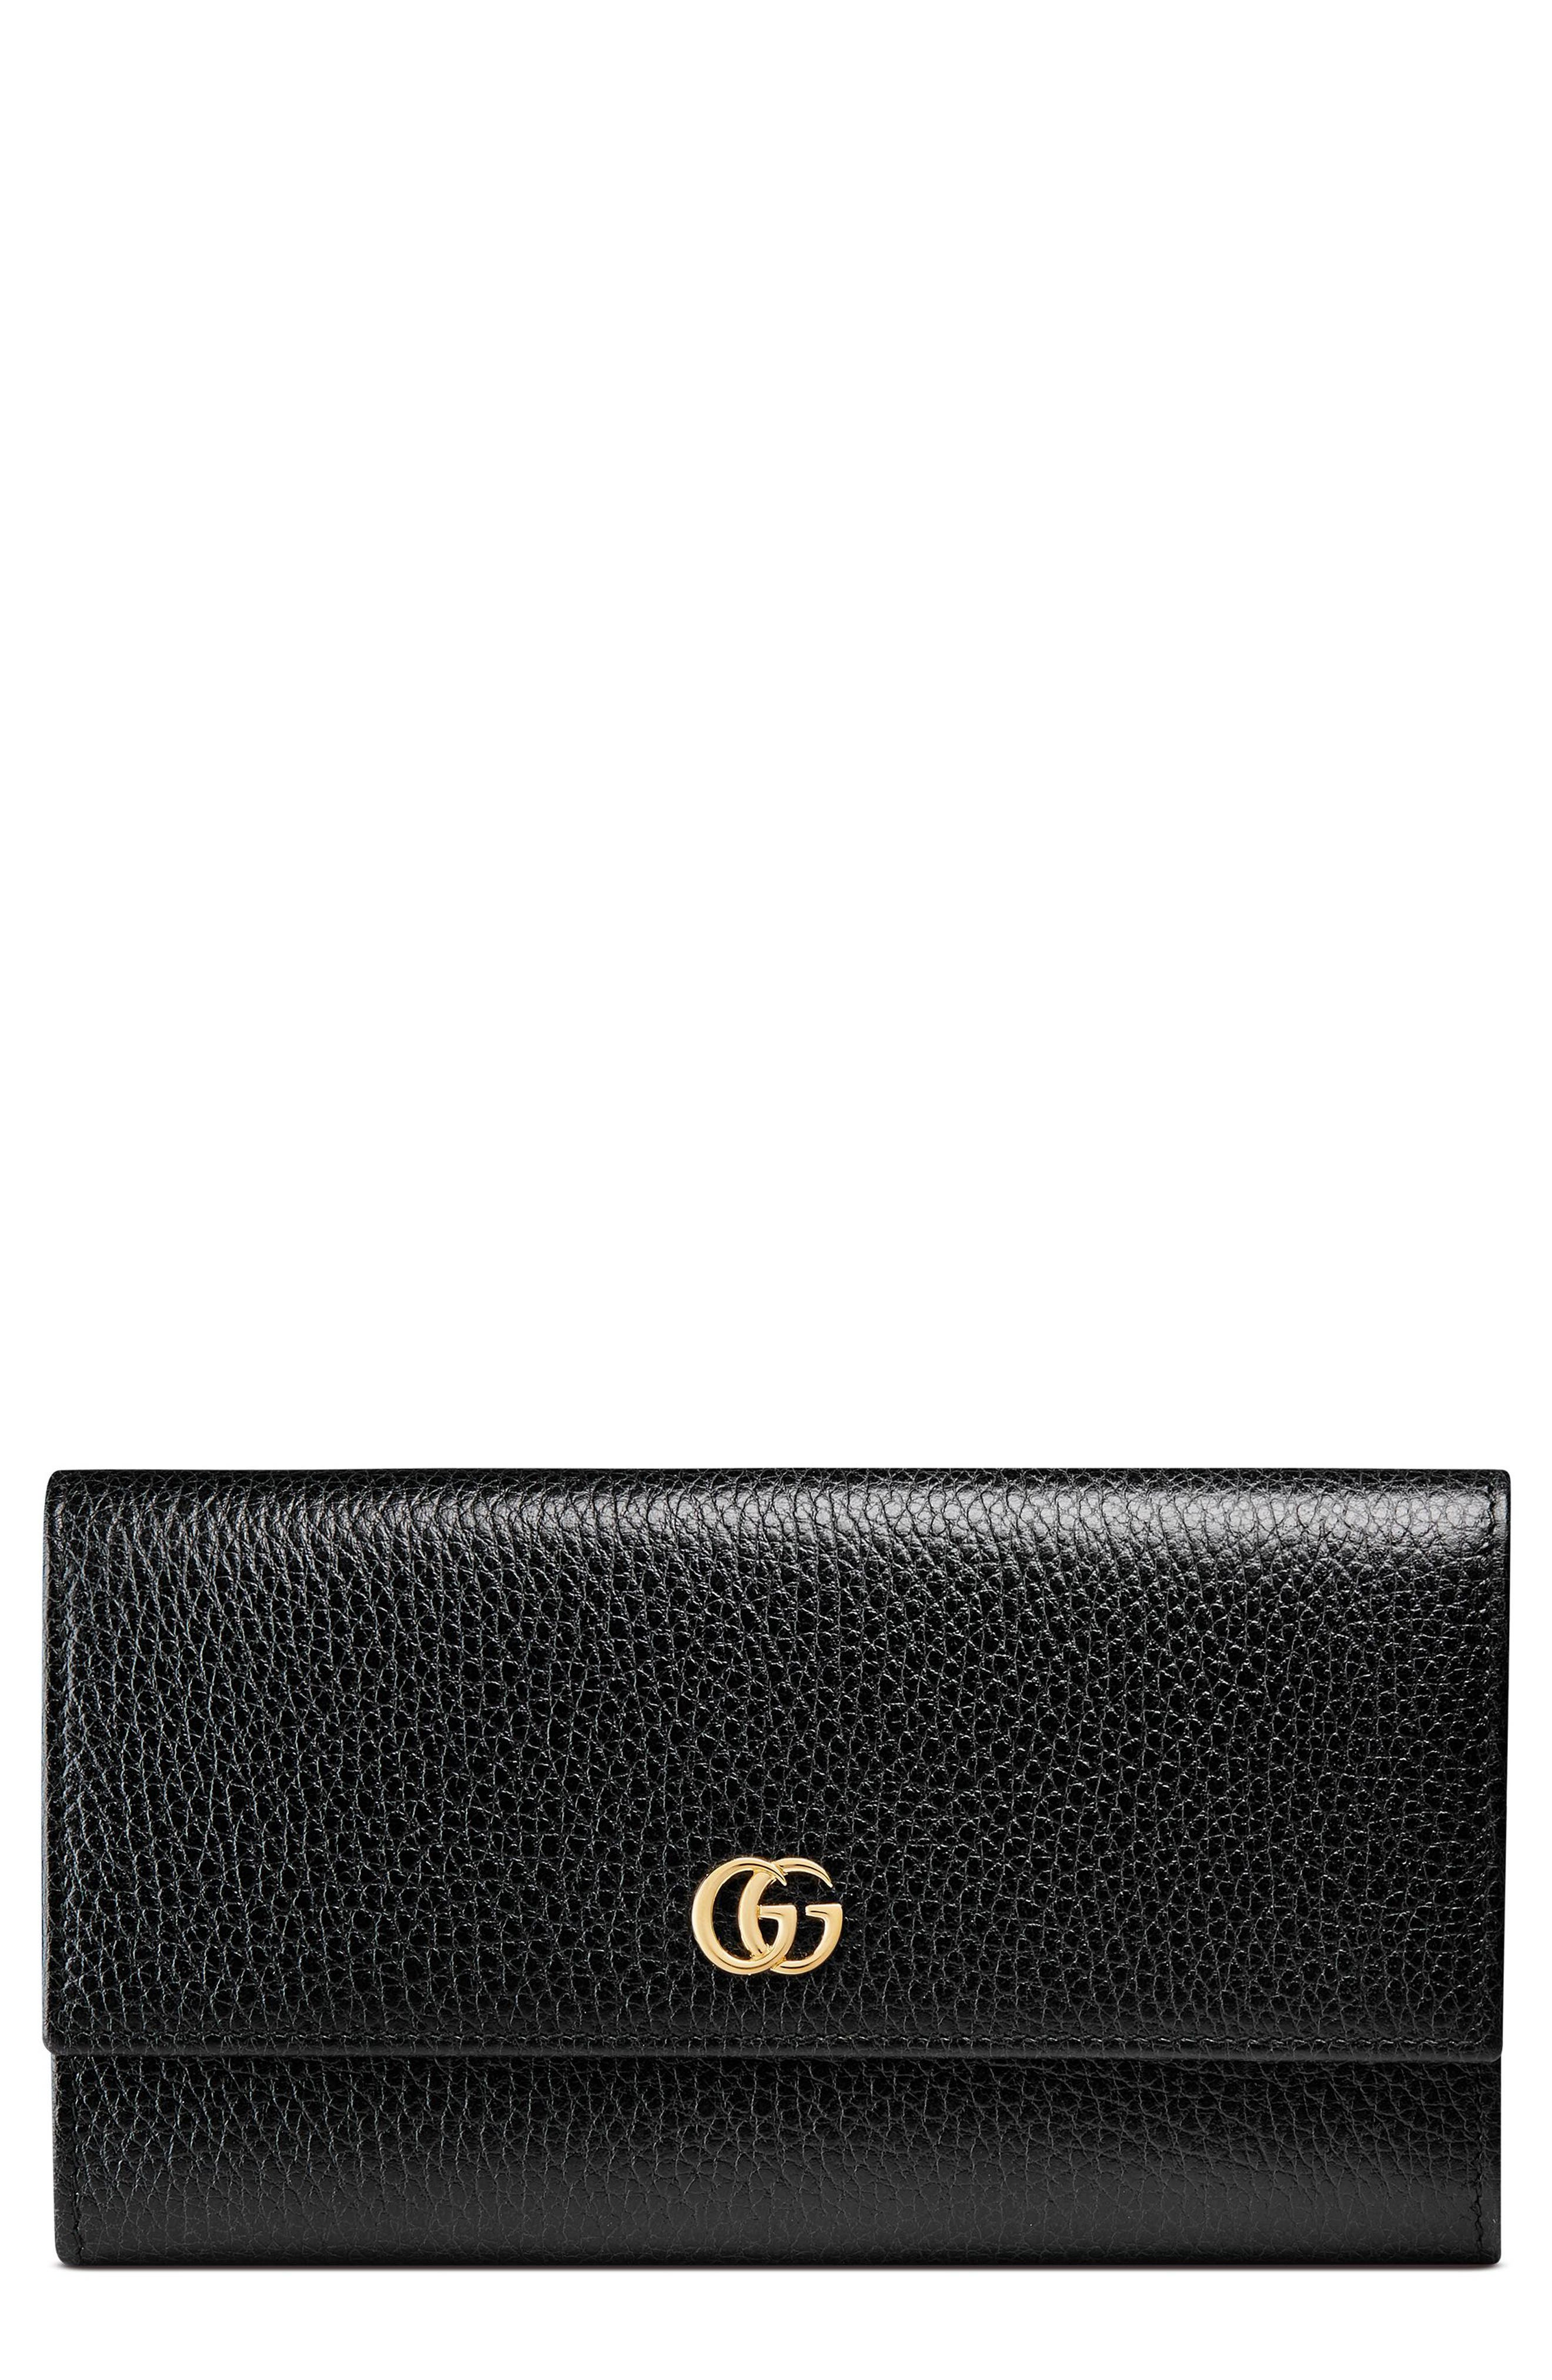 Petite Marmont Leather Continental Wallet,                             Main thumbnail 1, color,                             NERO/ NERO